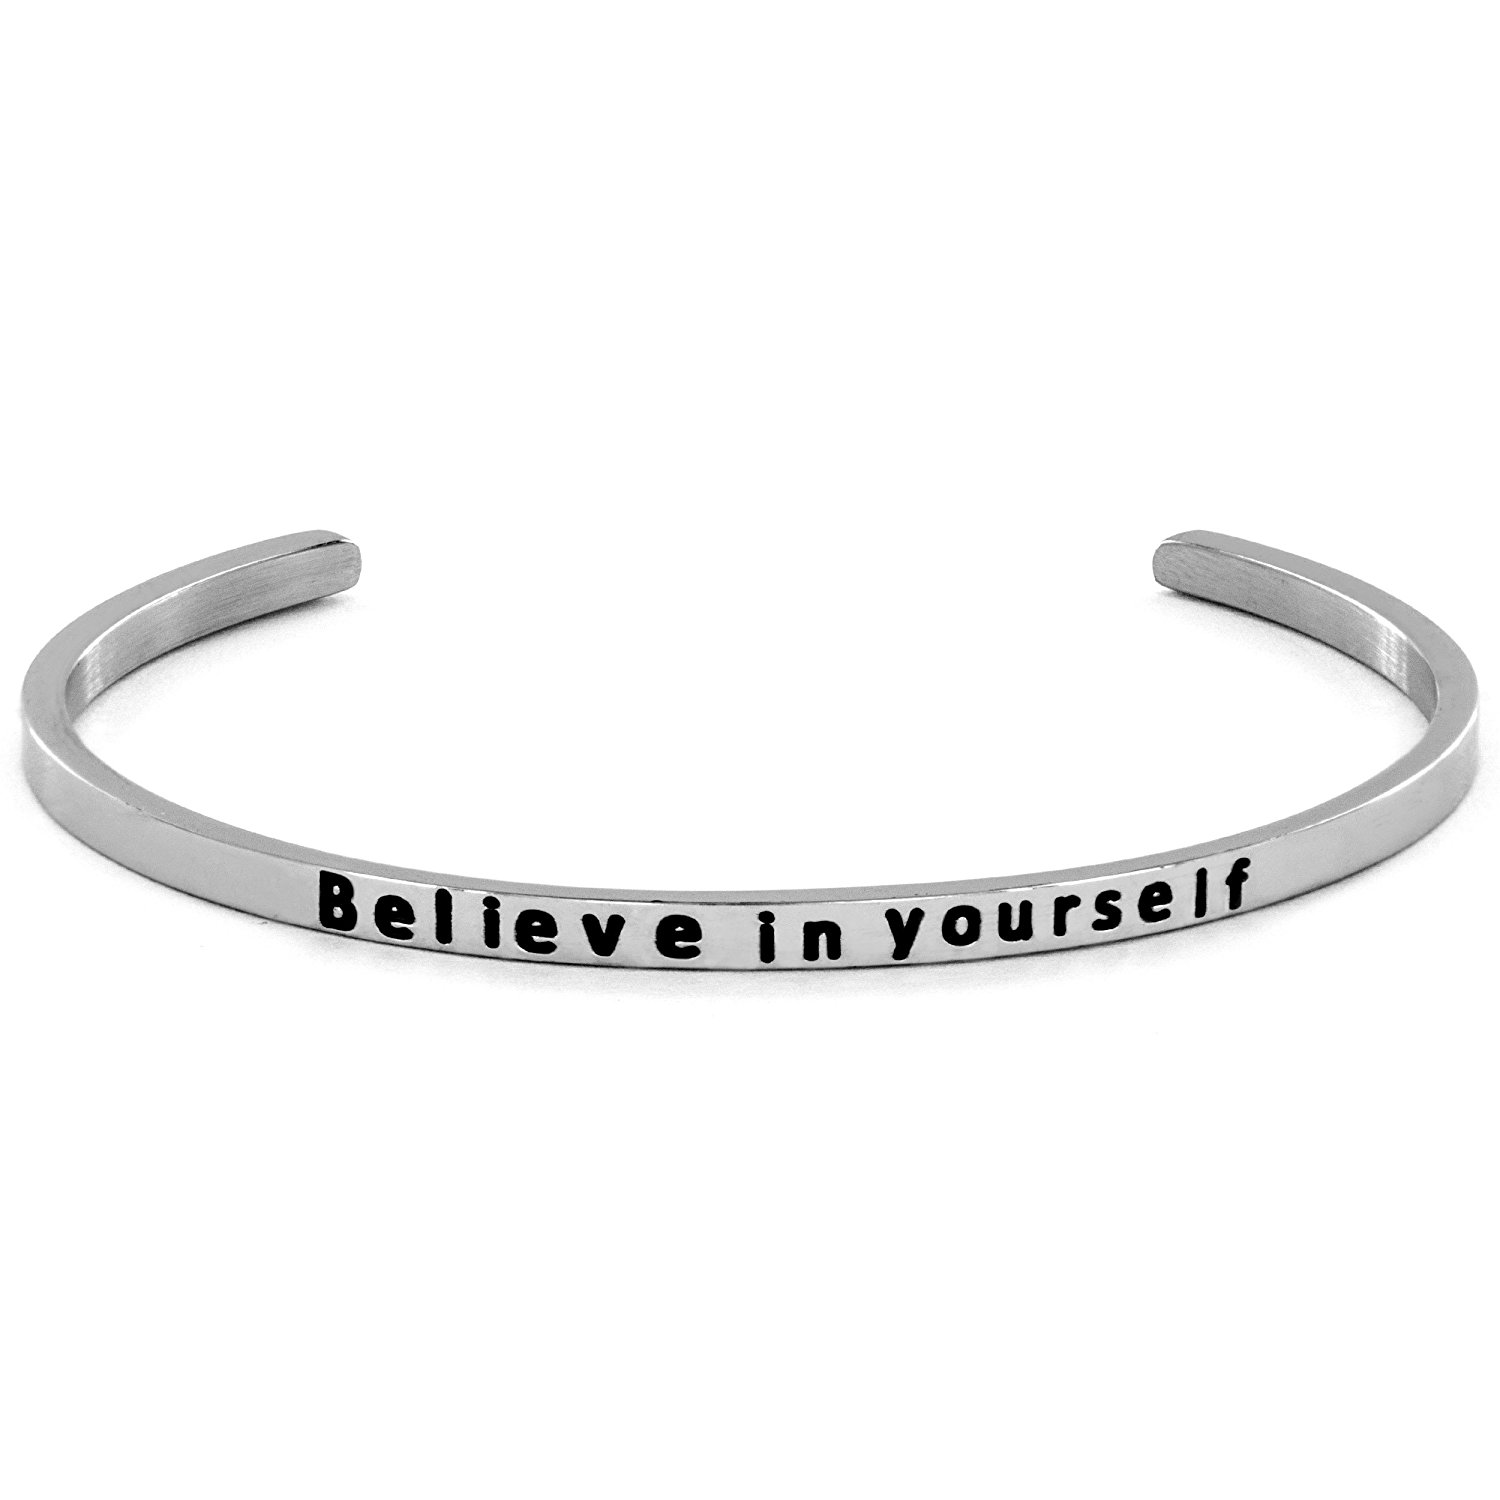 West Coast Jewelry 'Believe in Yourself' - Premium stainless steel Inspirational Cuff Bangle Bracelet